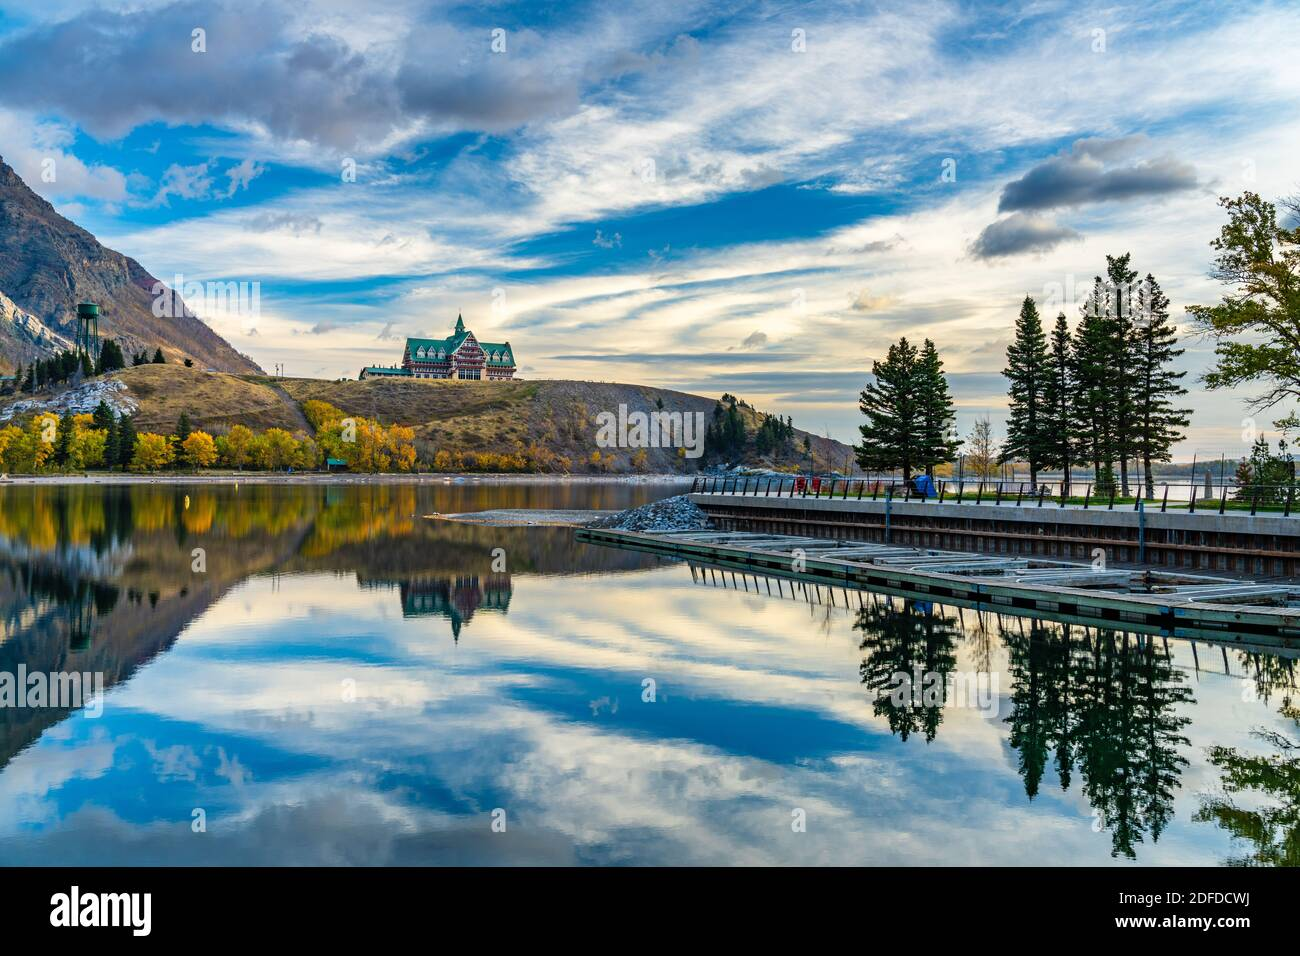 Waterton Lakes National Park lakeshore in autumn foliage season morning. Blue sky, colourful clouds reflect on lake surface like a mirror in sunrise. Stock Photo